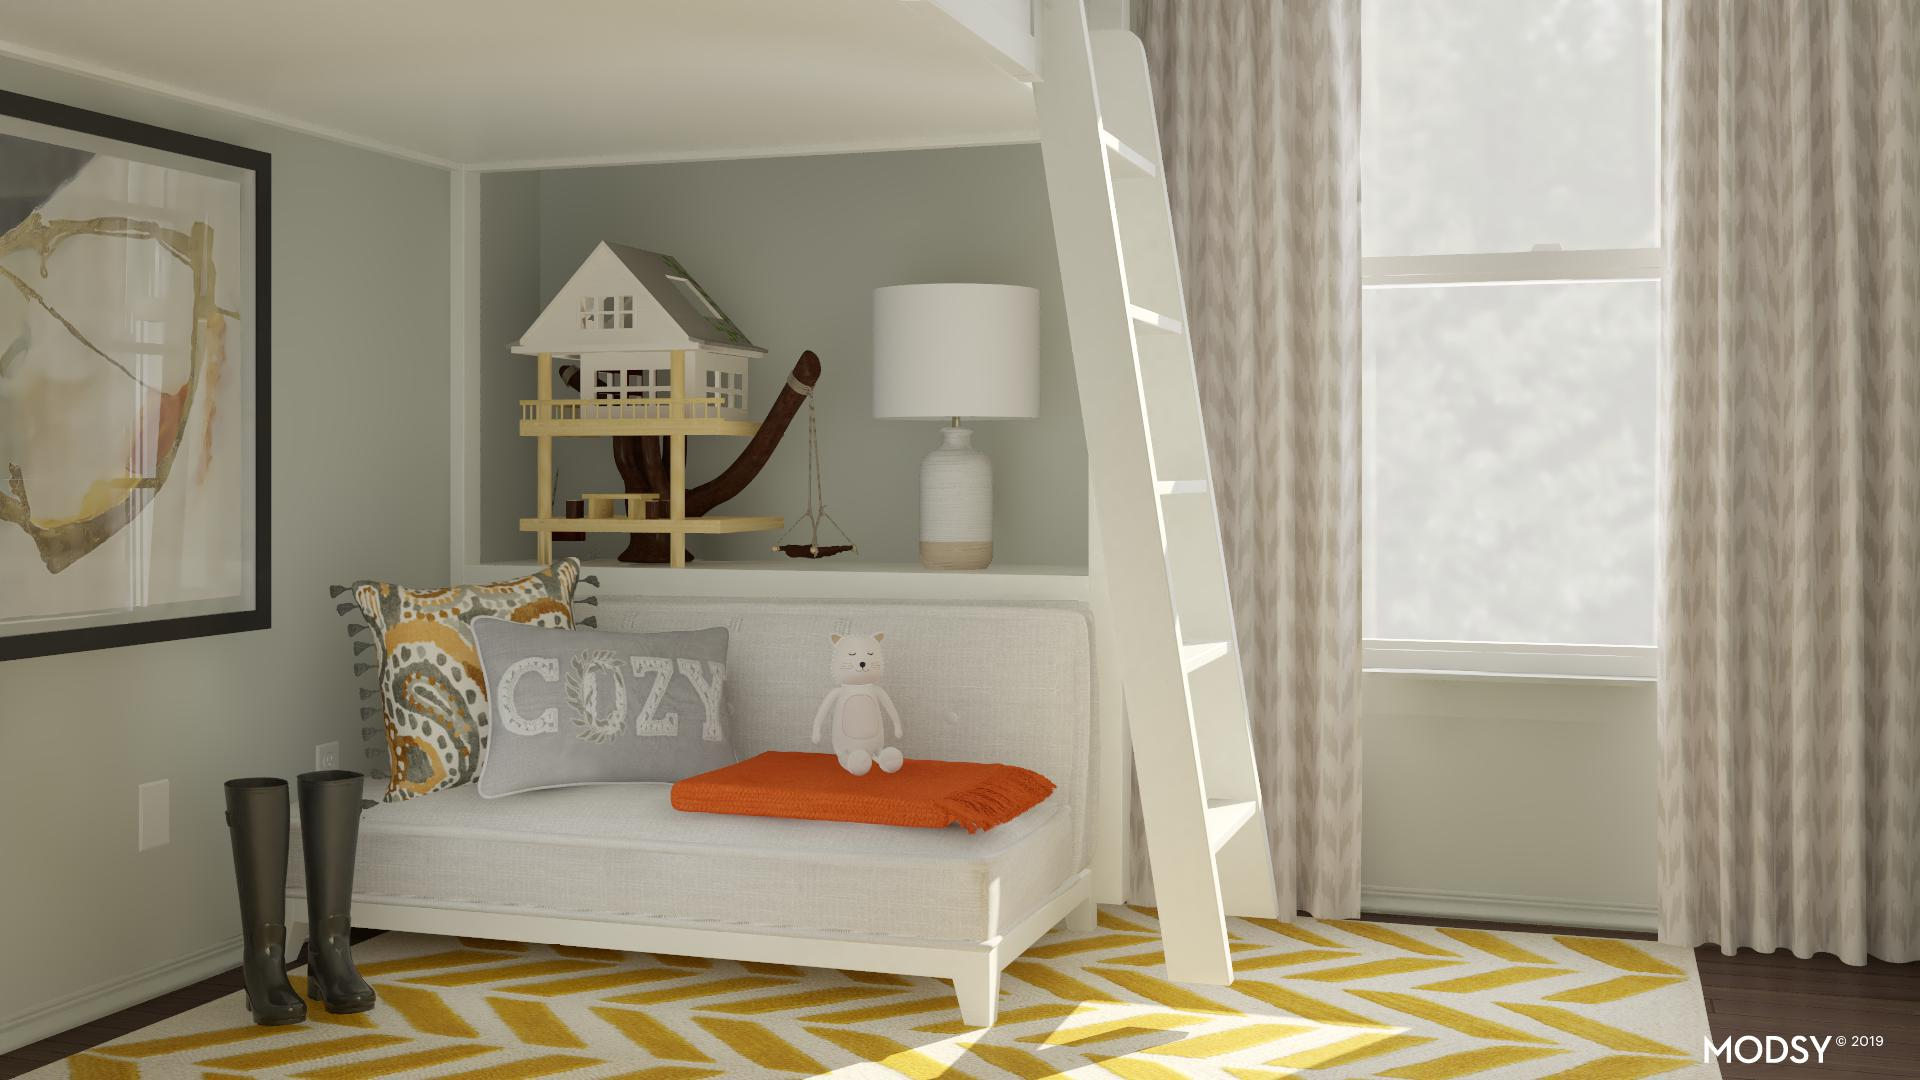 Clutter Free Rustic And Earthy Kids Room Rustic Style